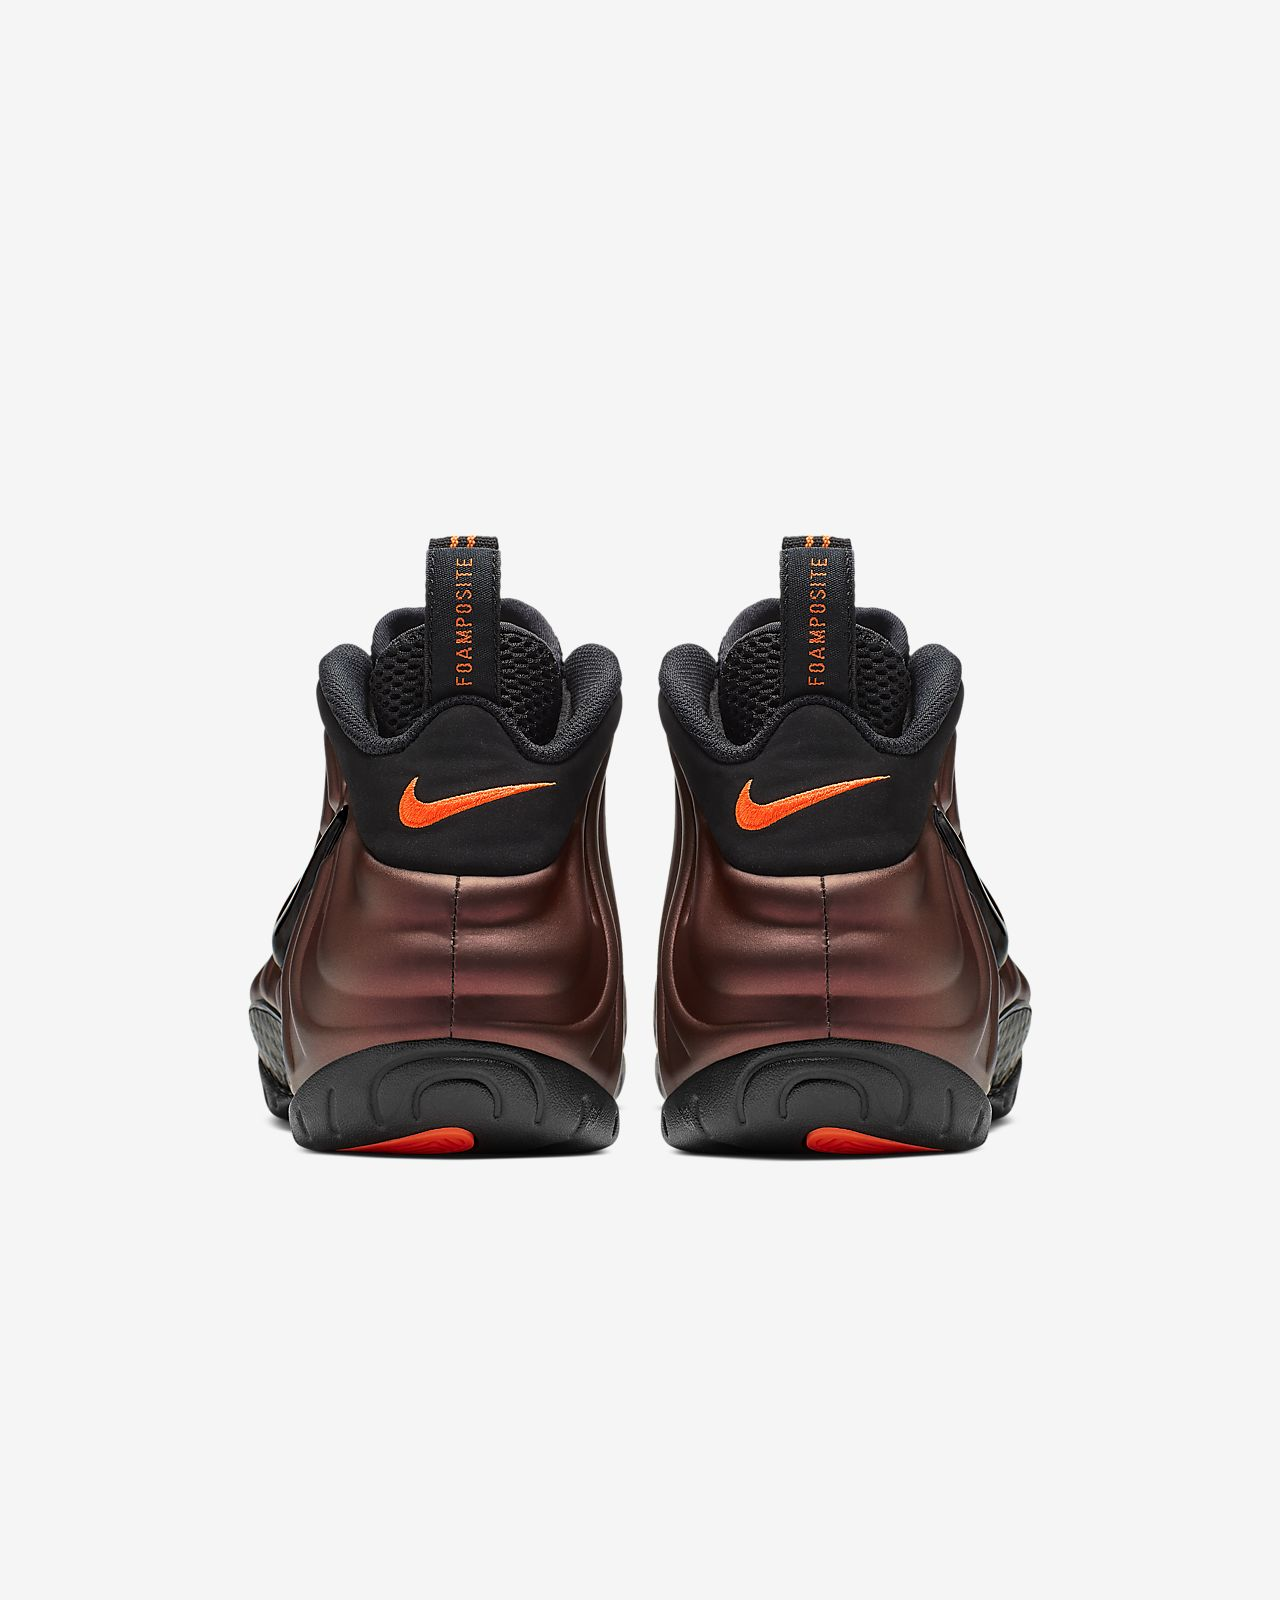 b8c98c60de3 Nike Air Foamposite Pro Men s Shoe. Nike.com